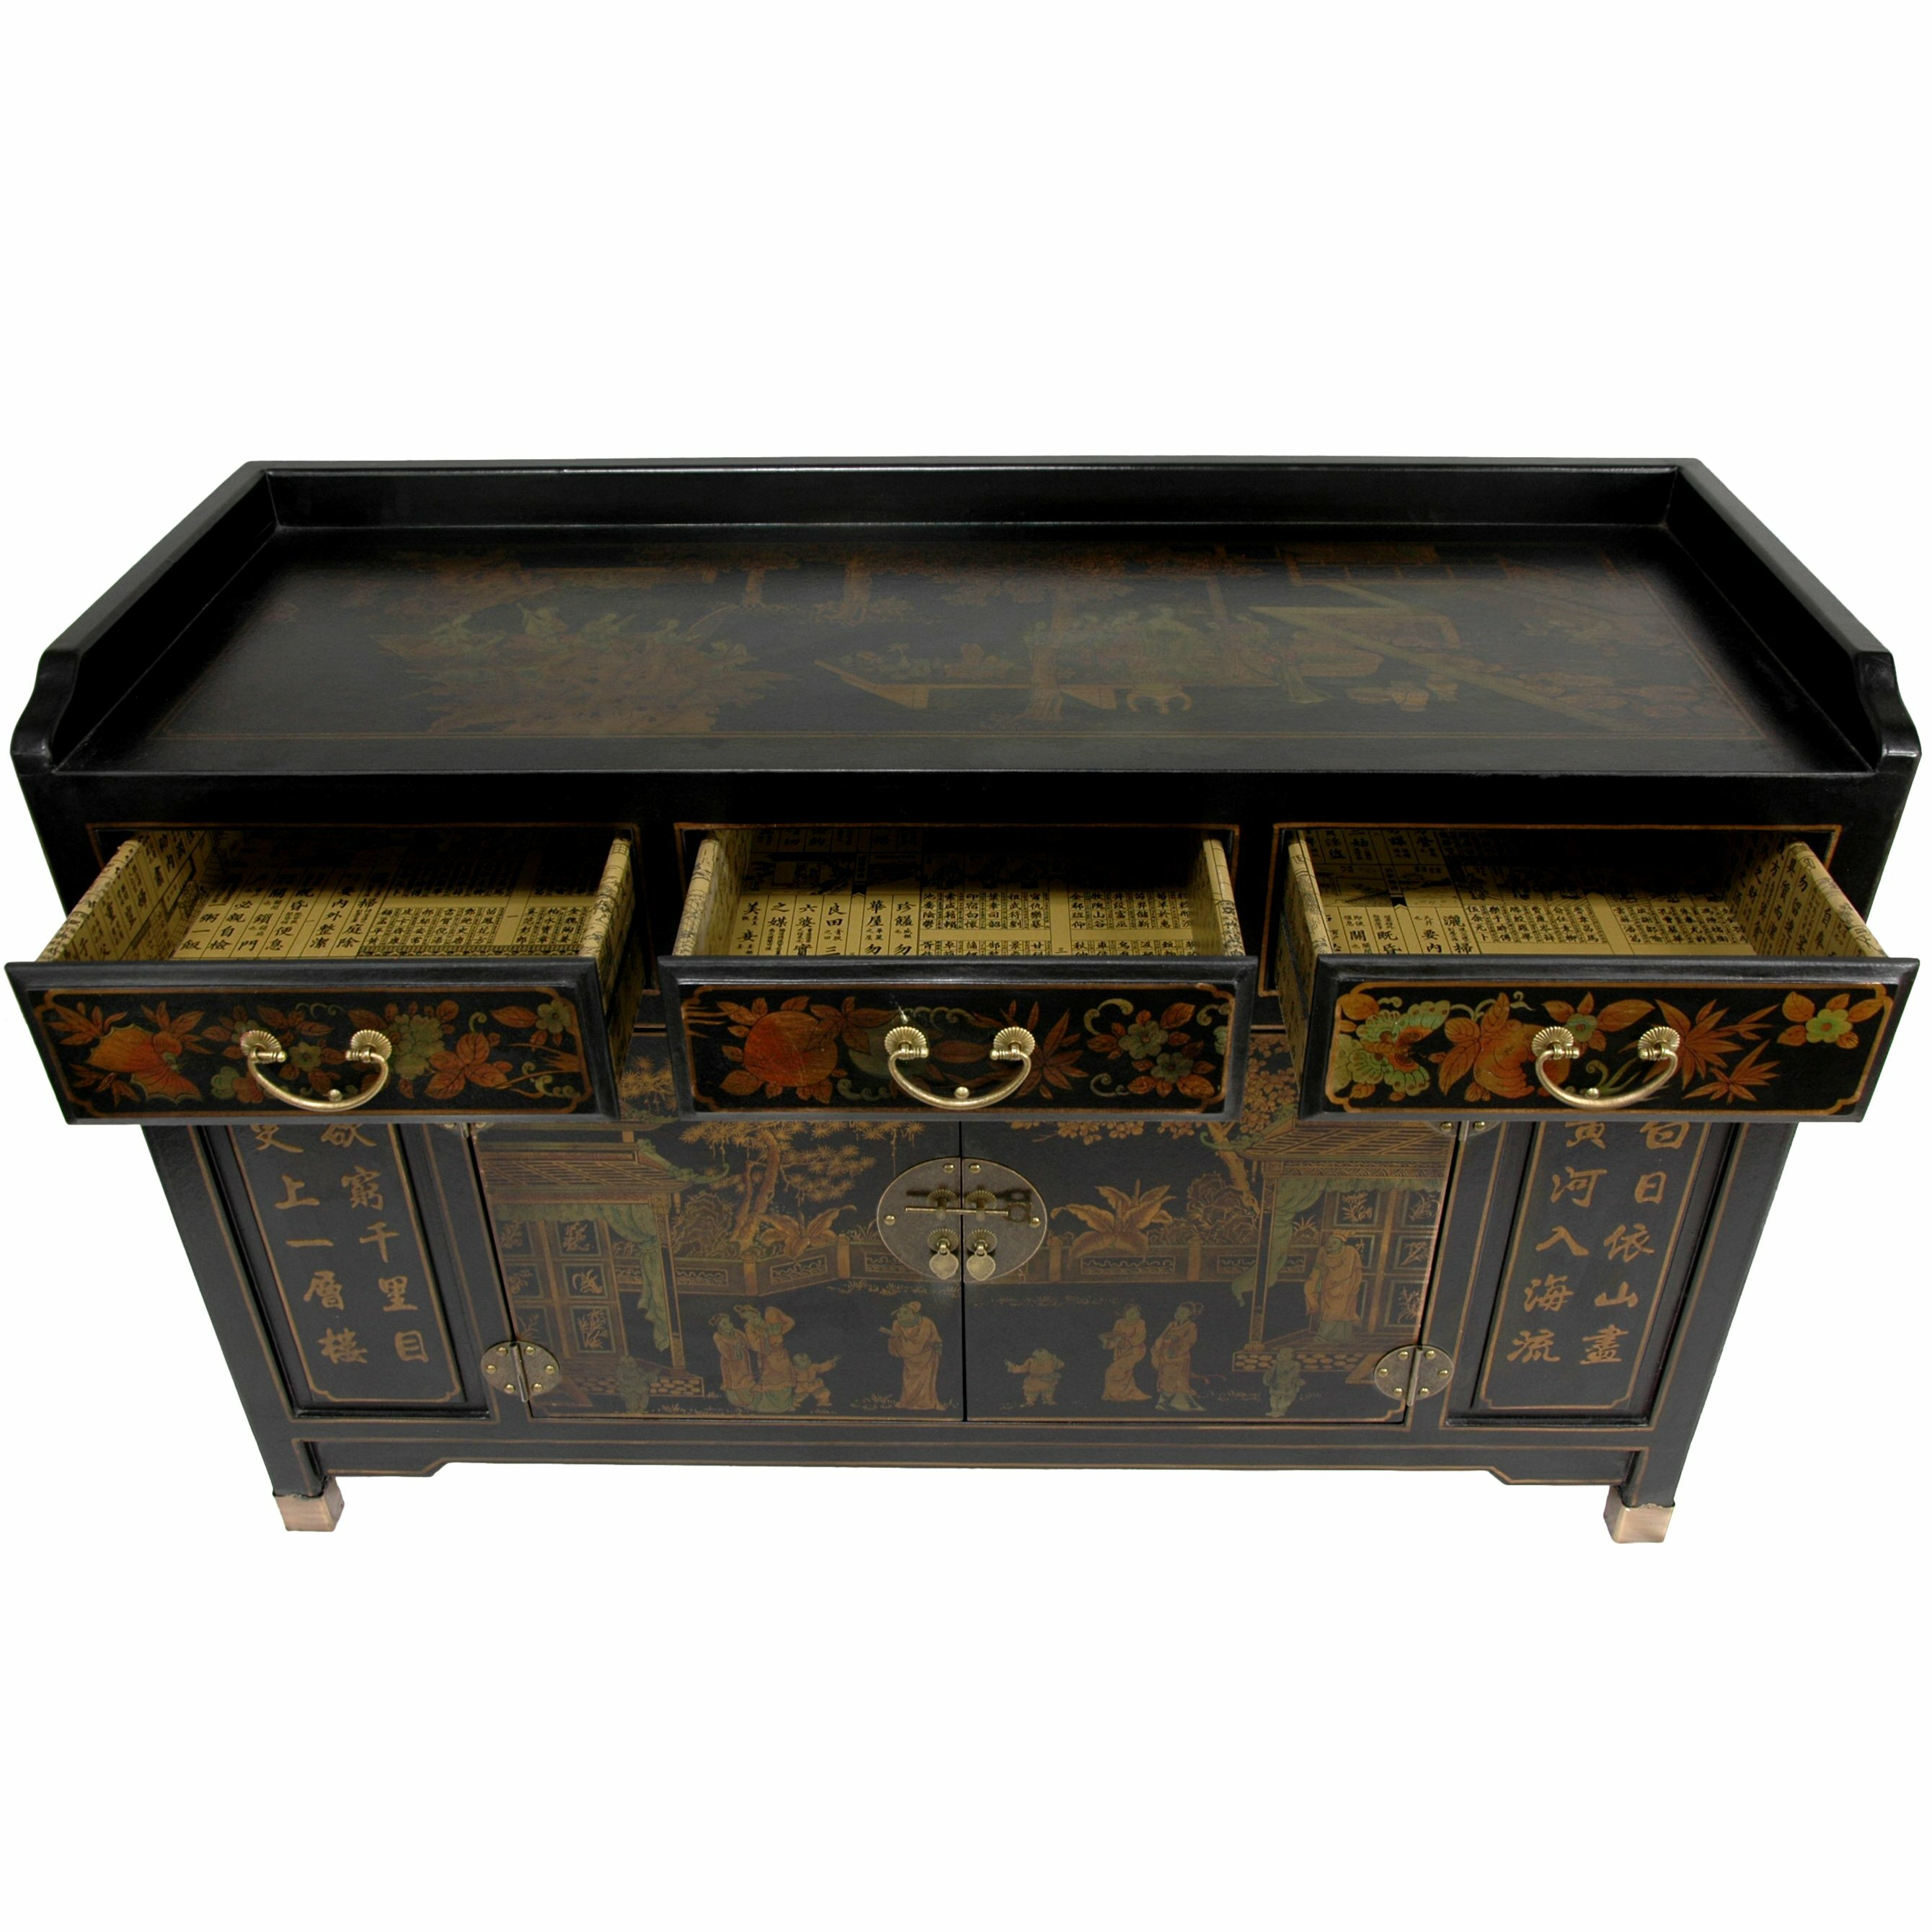 Oriental furniture buffet table reviews wayfair for Oriental furniture